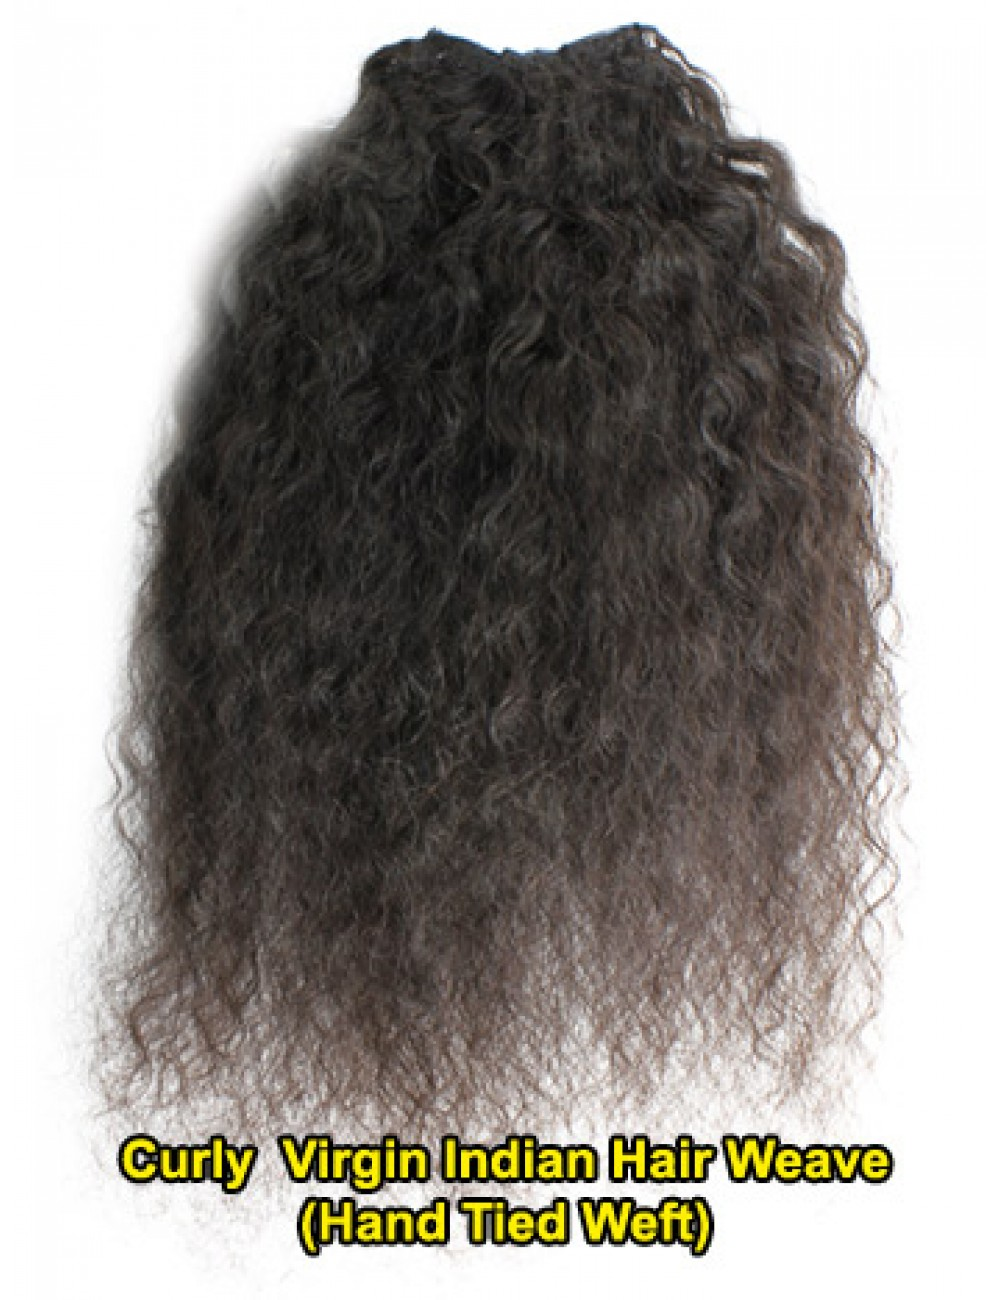 India Human Hair, India Human Hair Manufacturers and Suppliers